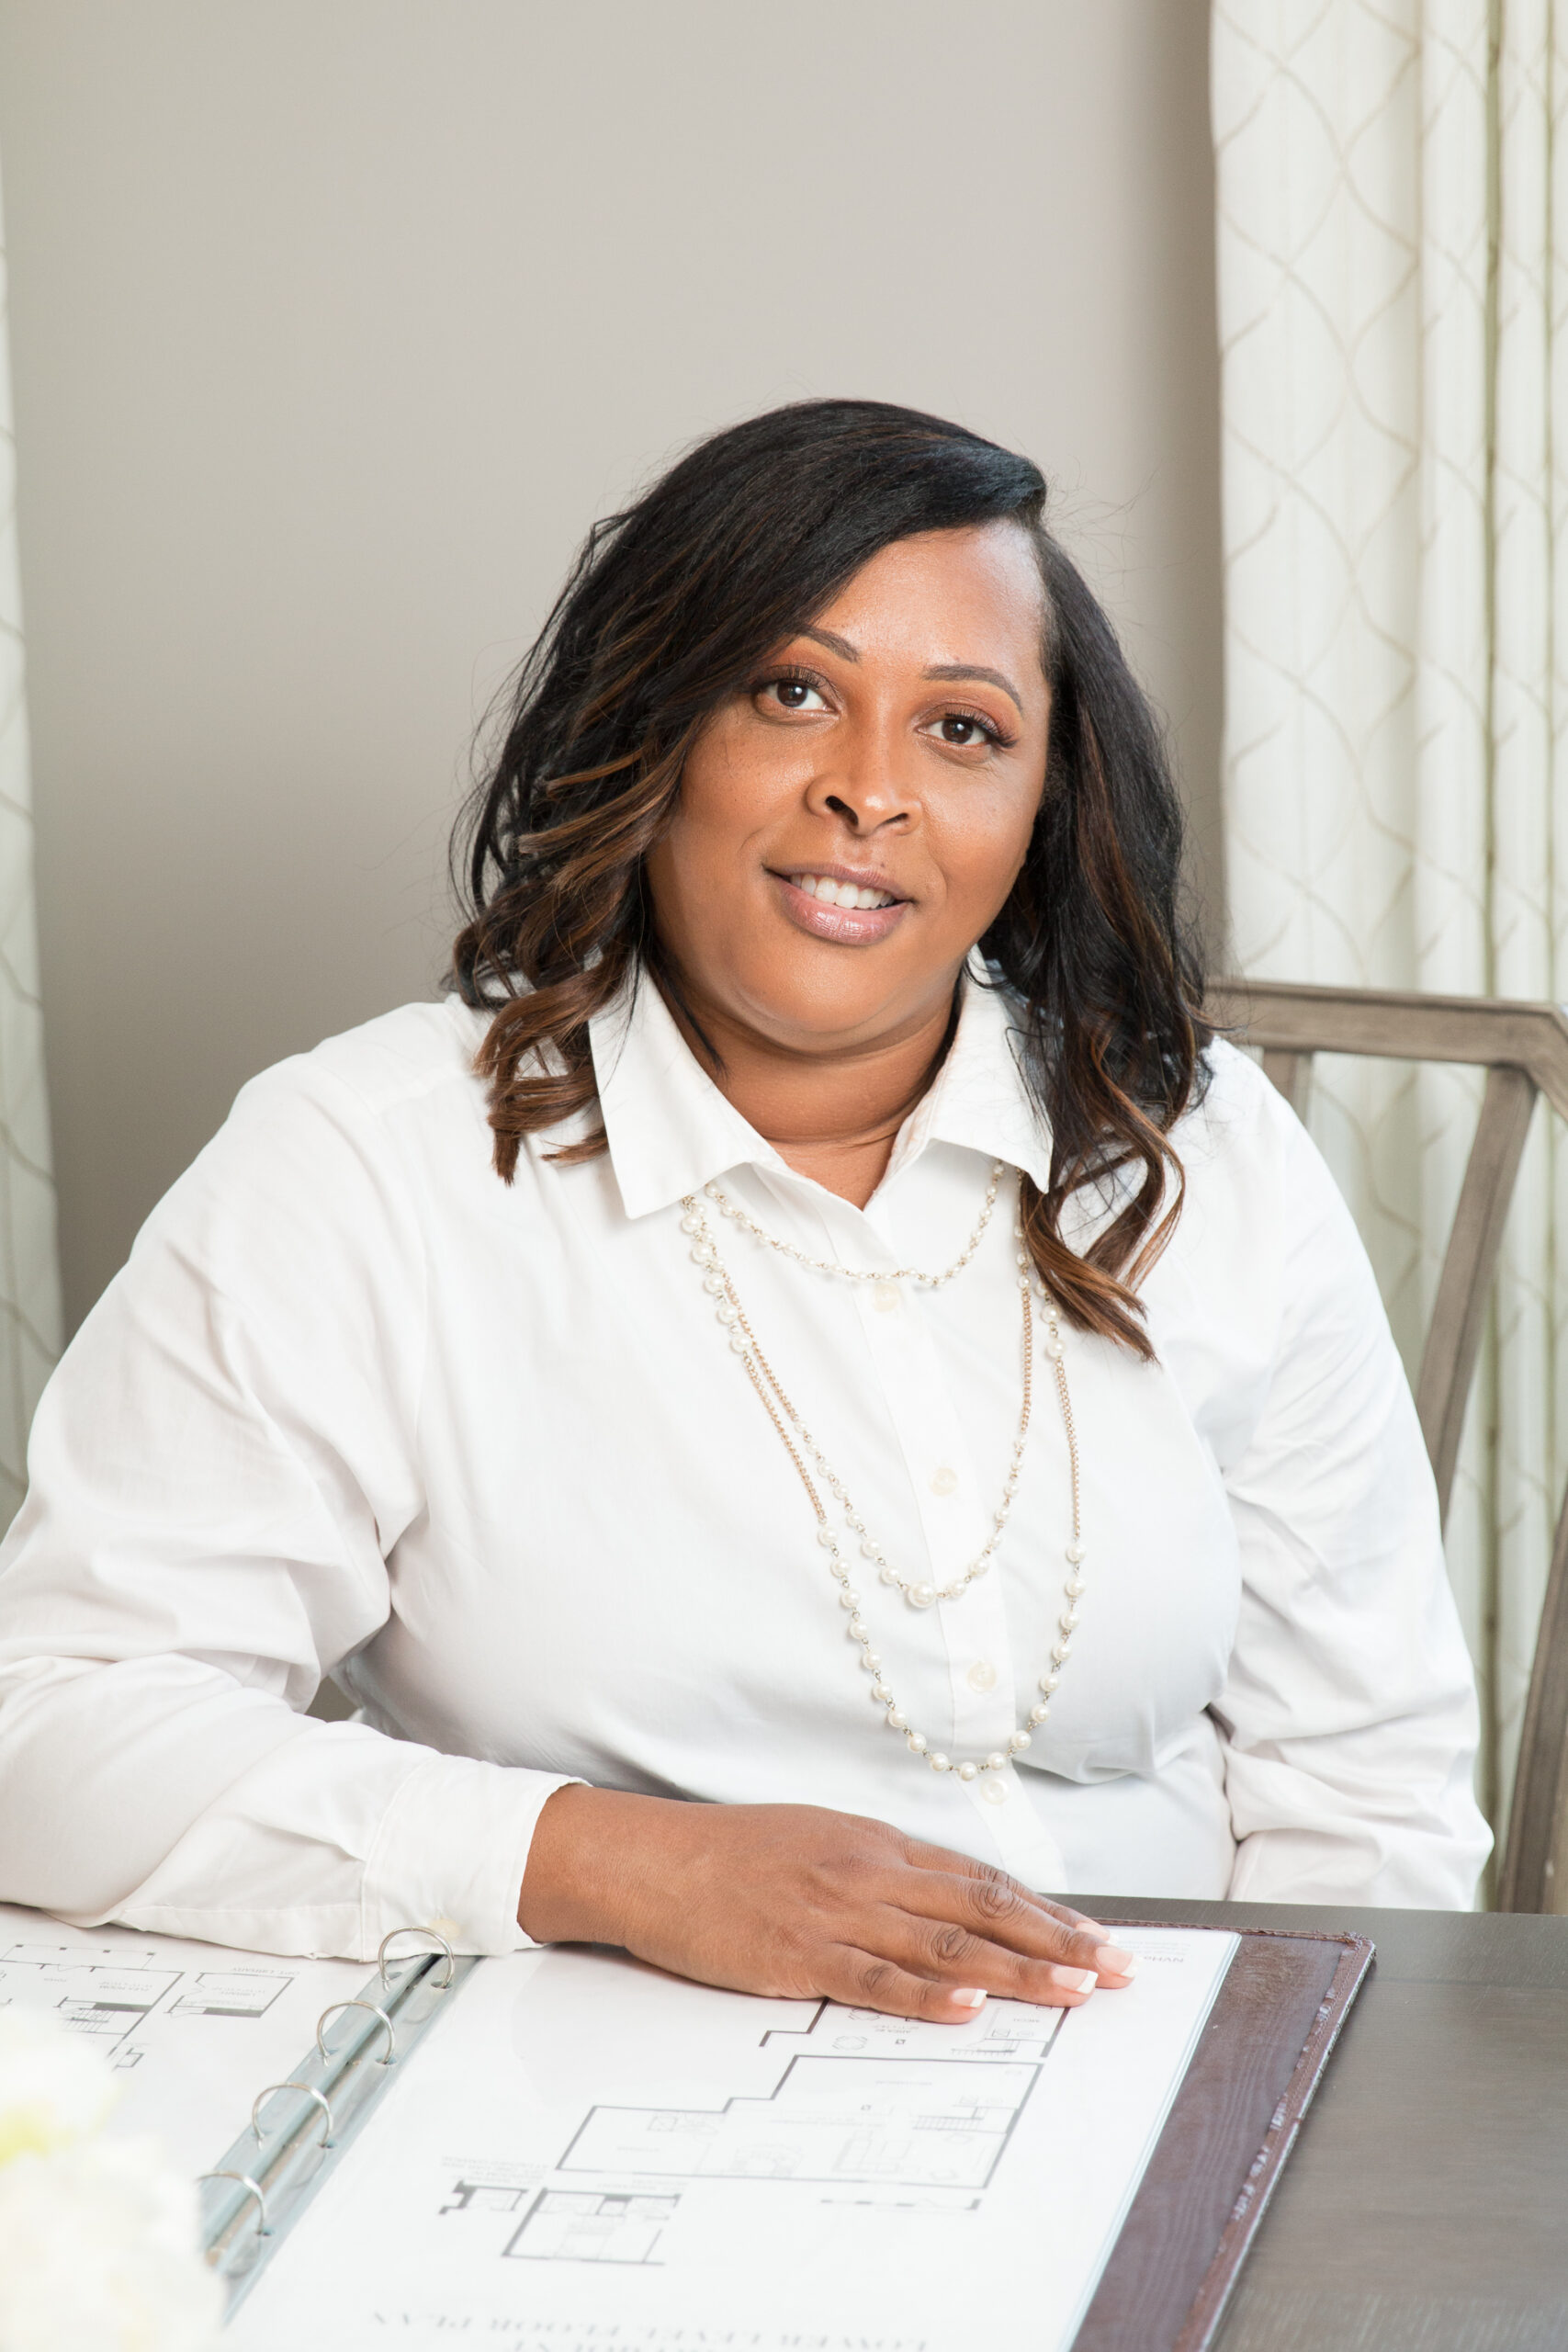 Making a Difference: Nikki Patterson & RMC, Inc.